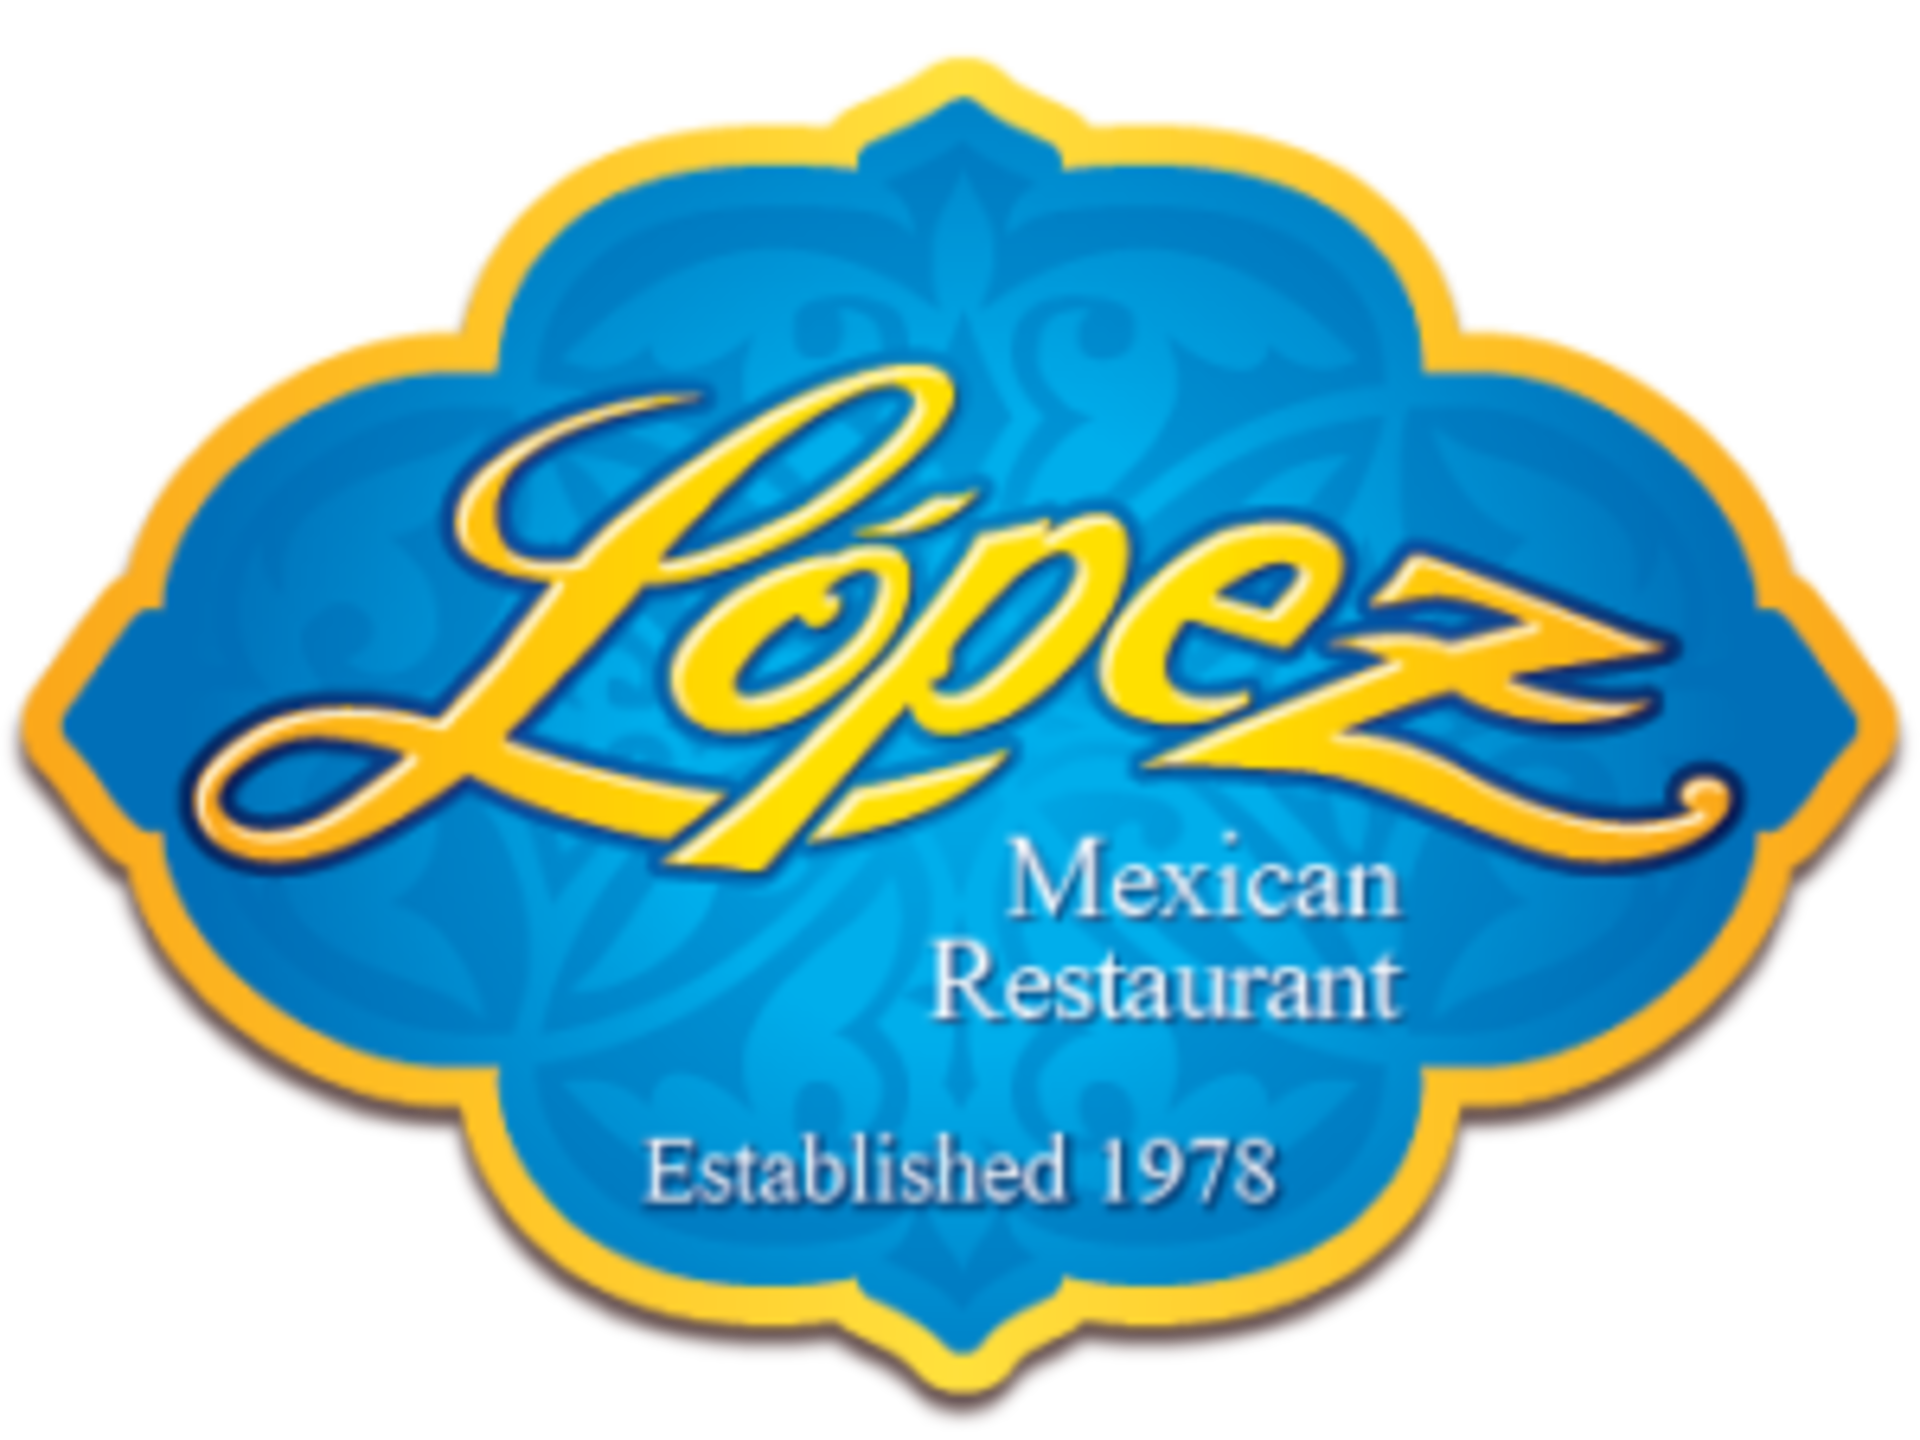 New Lopez Mexican Restaurant coming to Richmond!